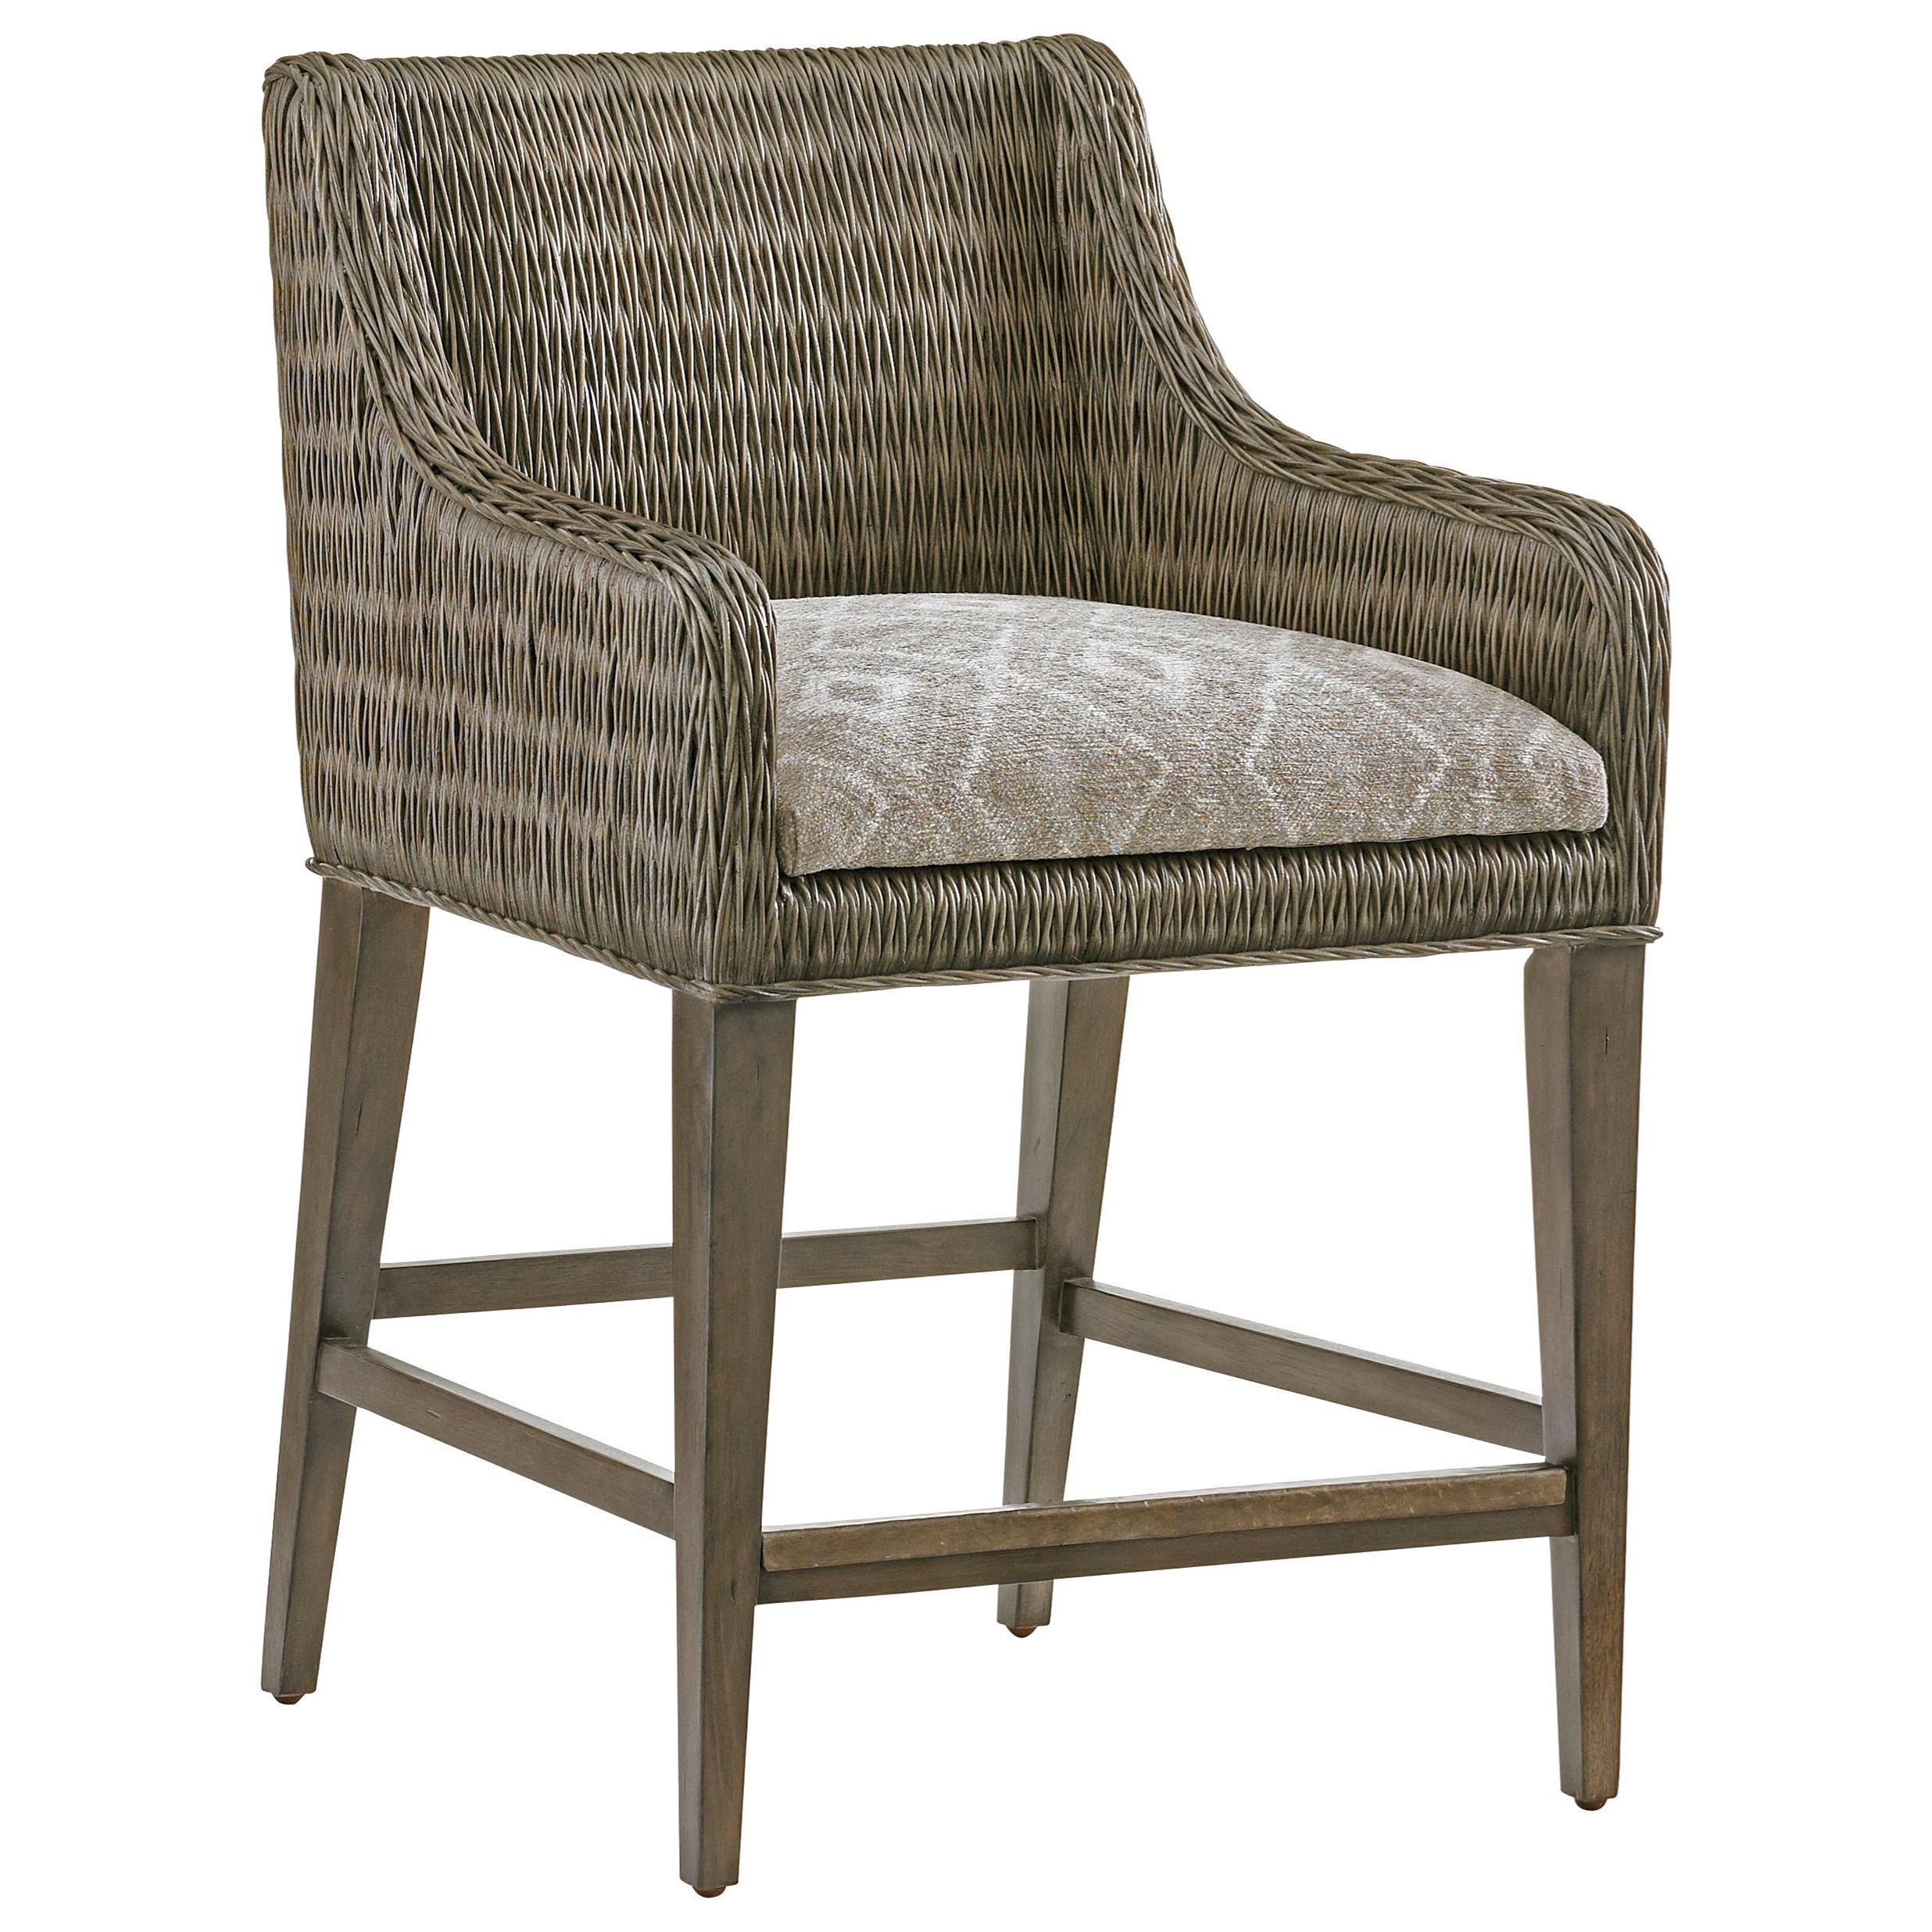 luxurypatio modern rattan tommy bahama outdoor furniture. Tommy Bahama Home Cypress Point Turner Woven Rattan Counter Stool With Custom Fabric Cushion Wicker Chair. Luxurypatio Modern Outdoor Furniture A